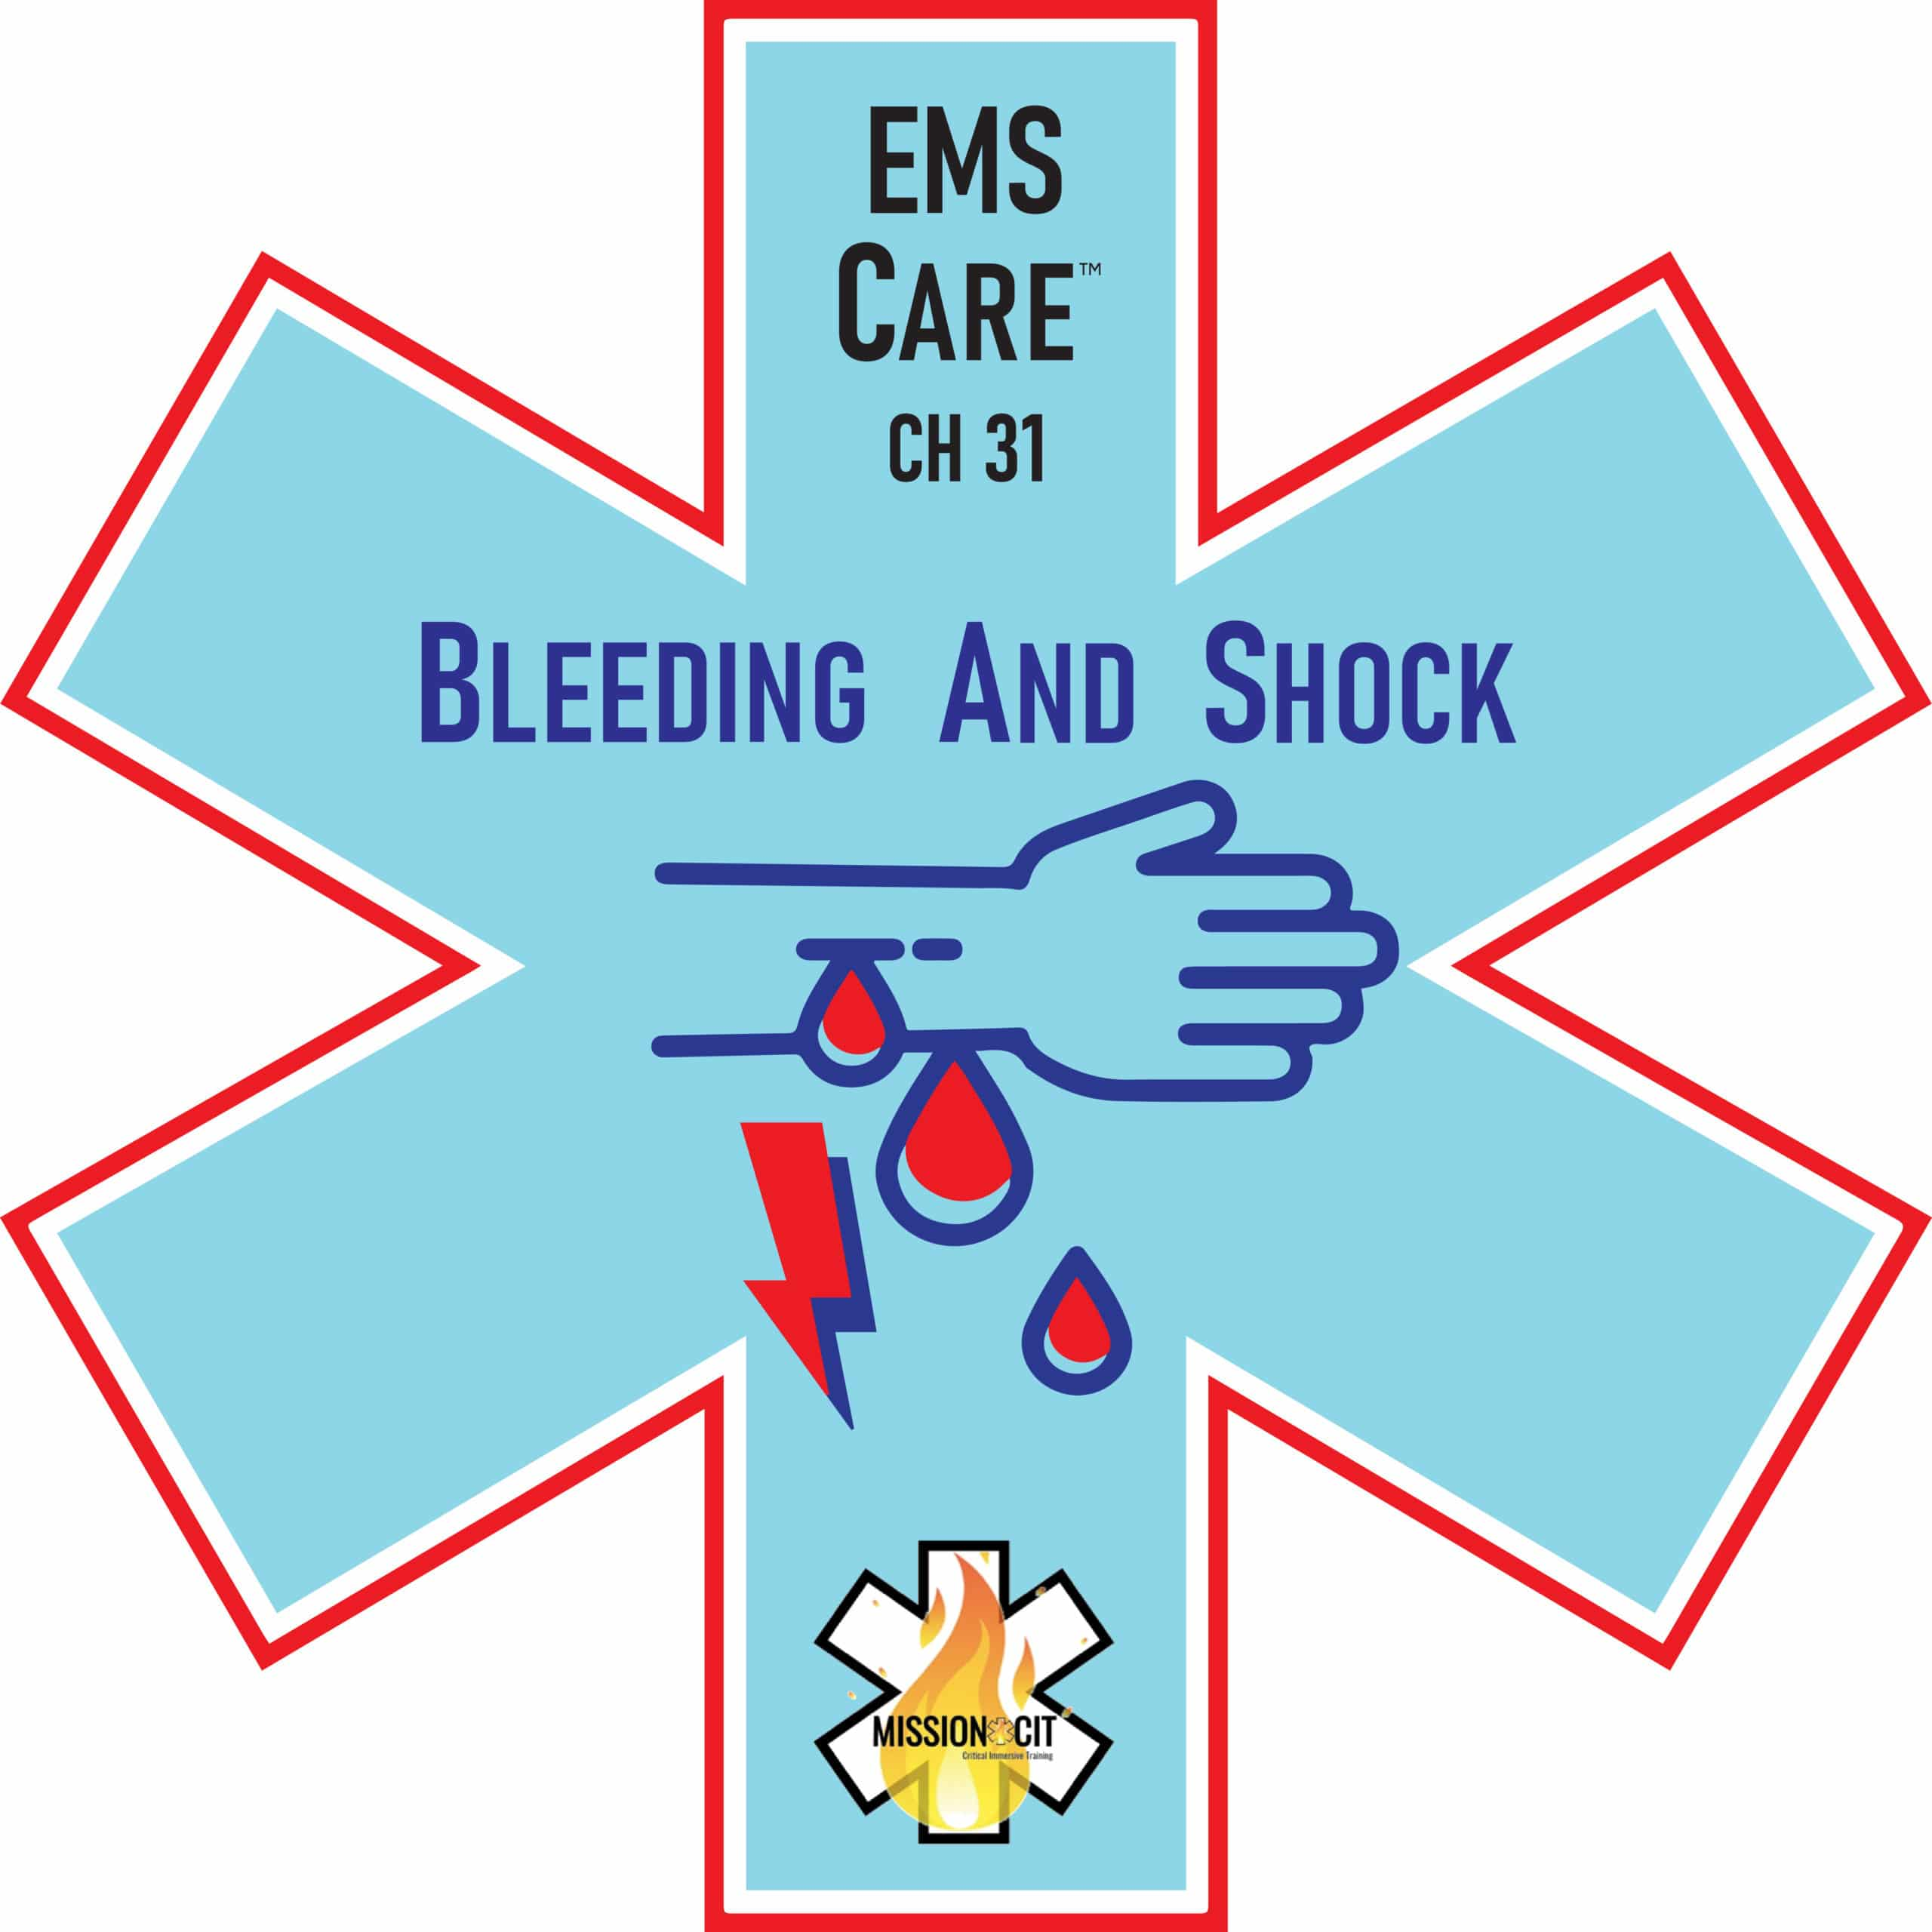 missioncit-ems-care-bleeding-and-shock